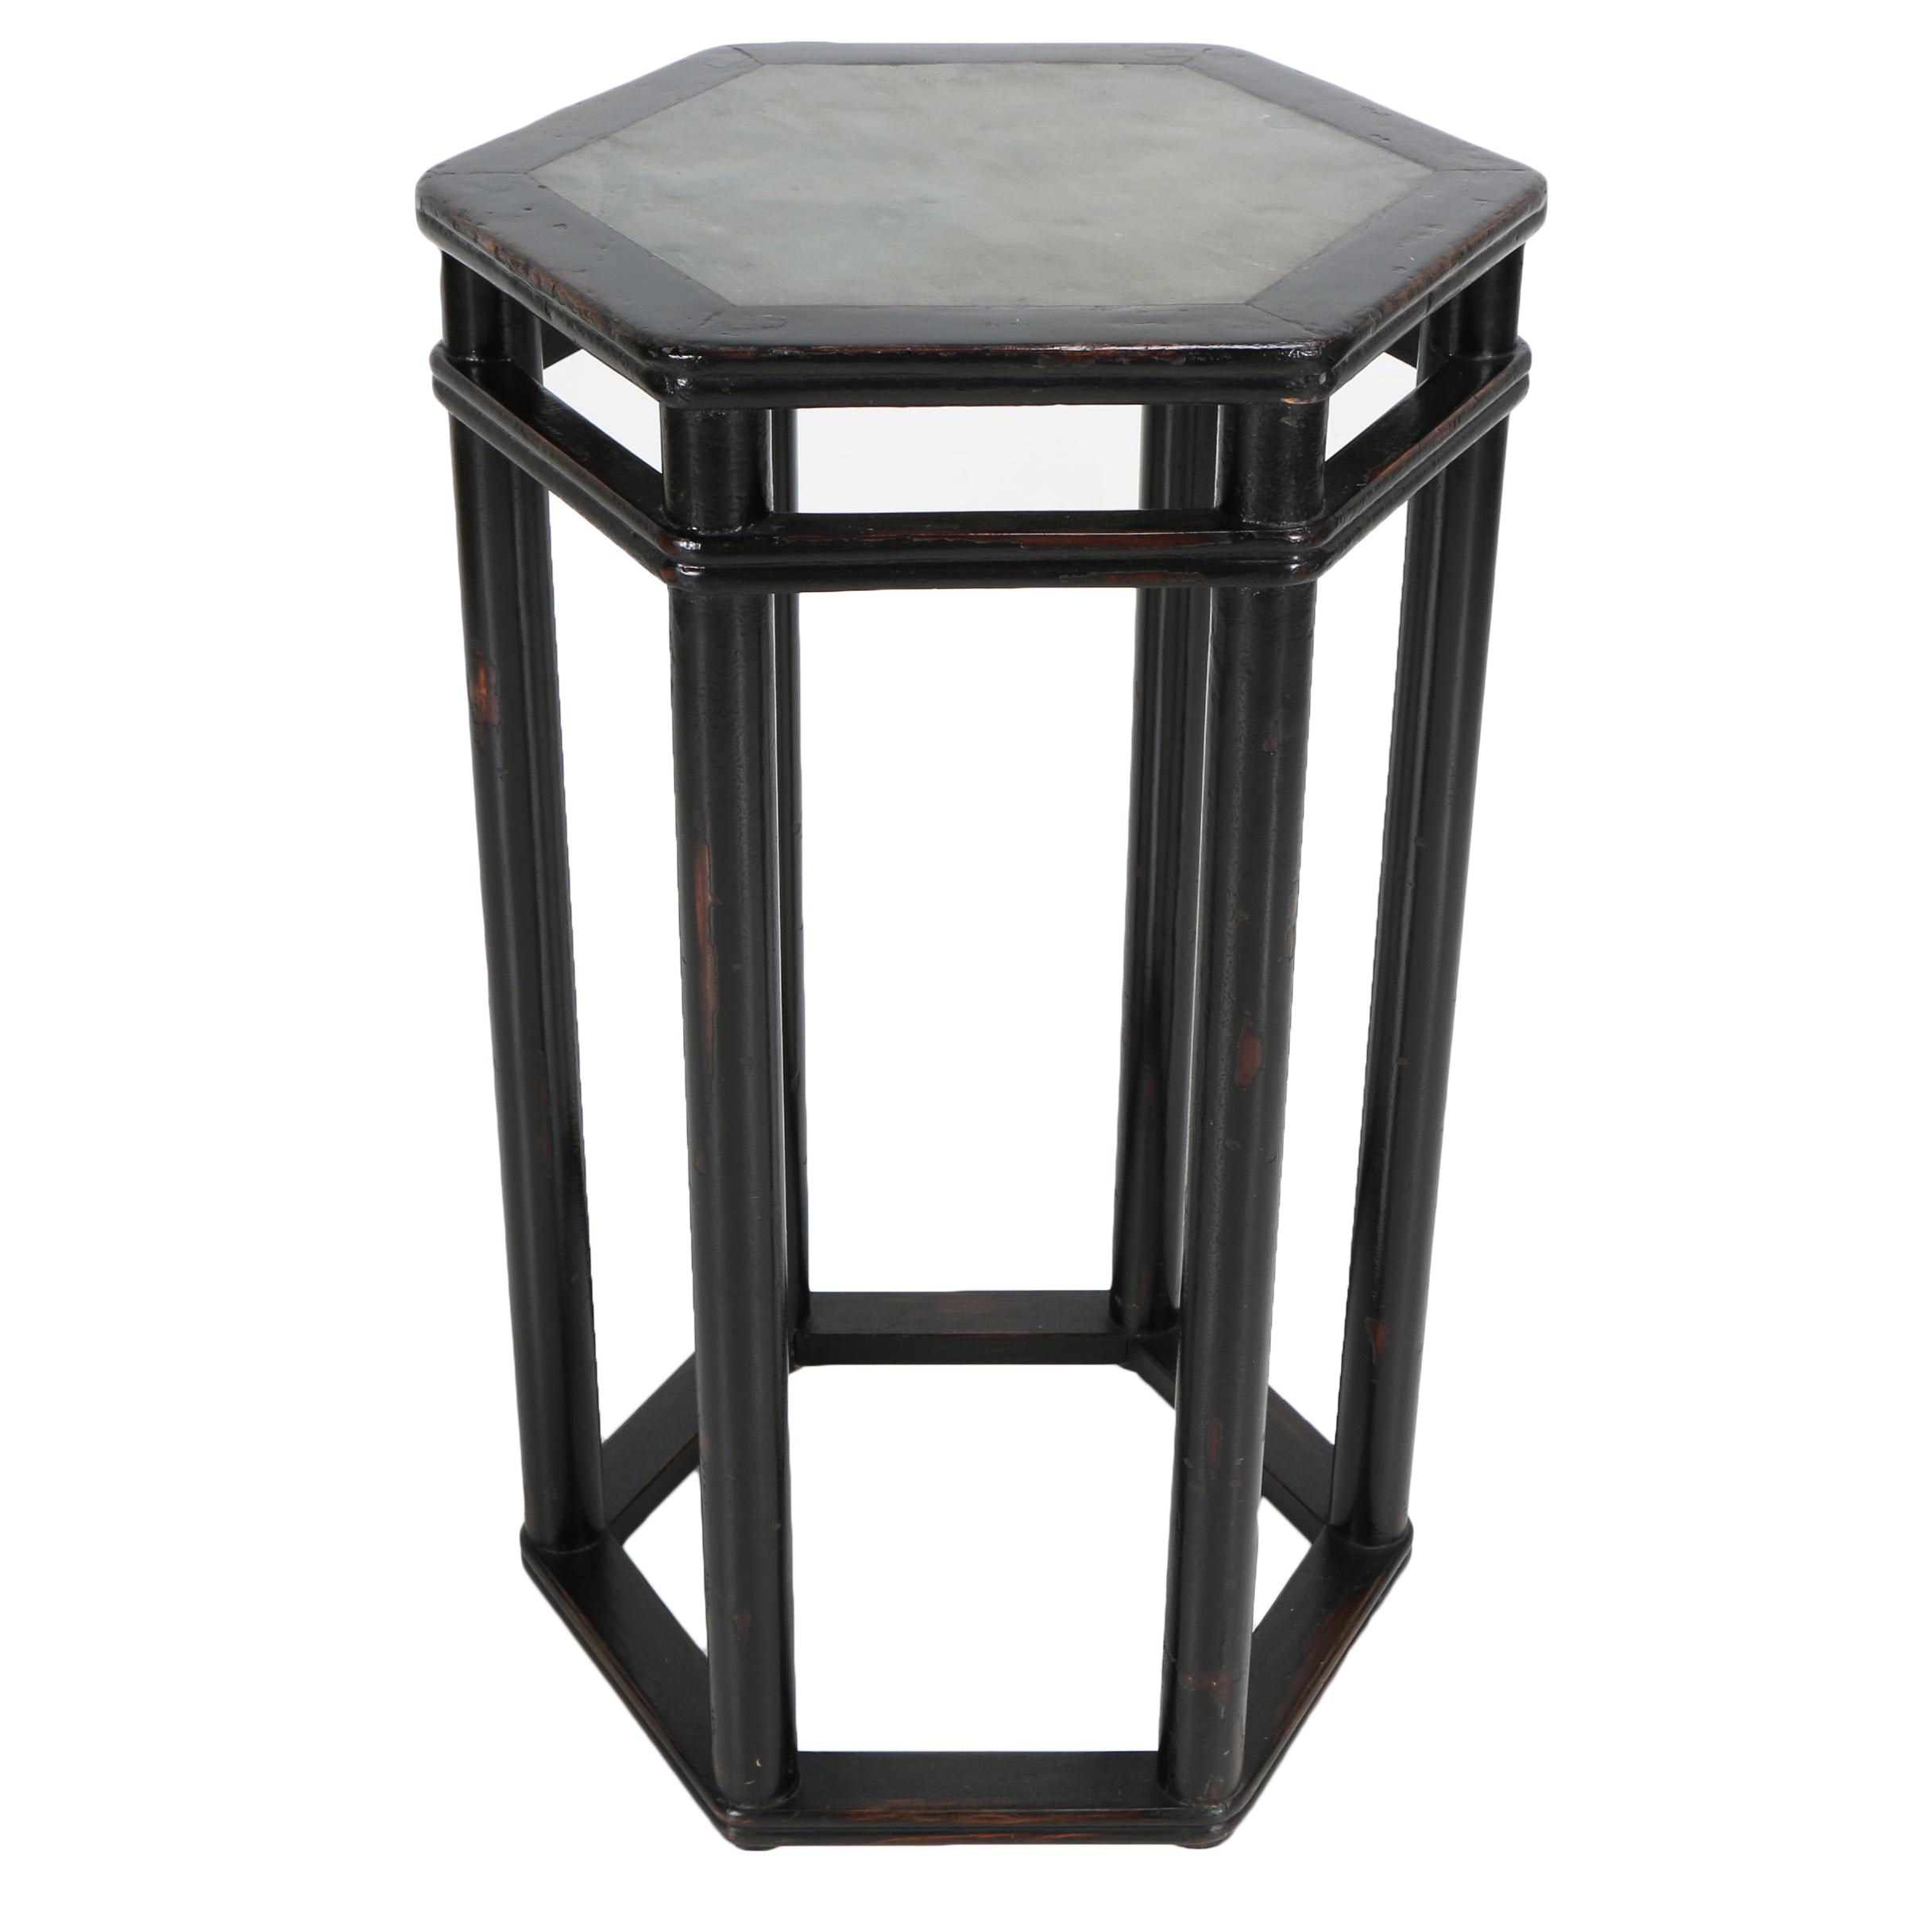 Stone Top Hexagonal Counter Height Accent Table